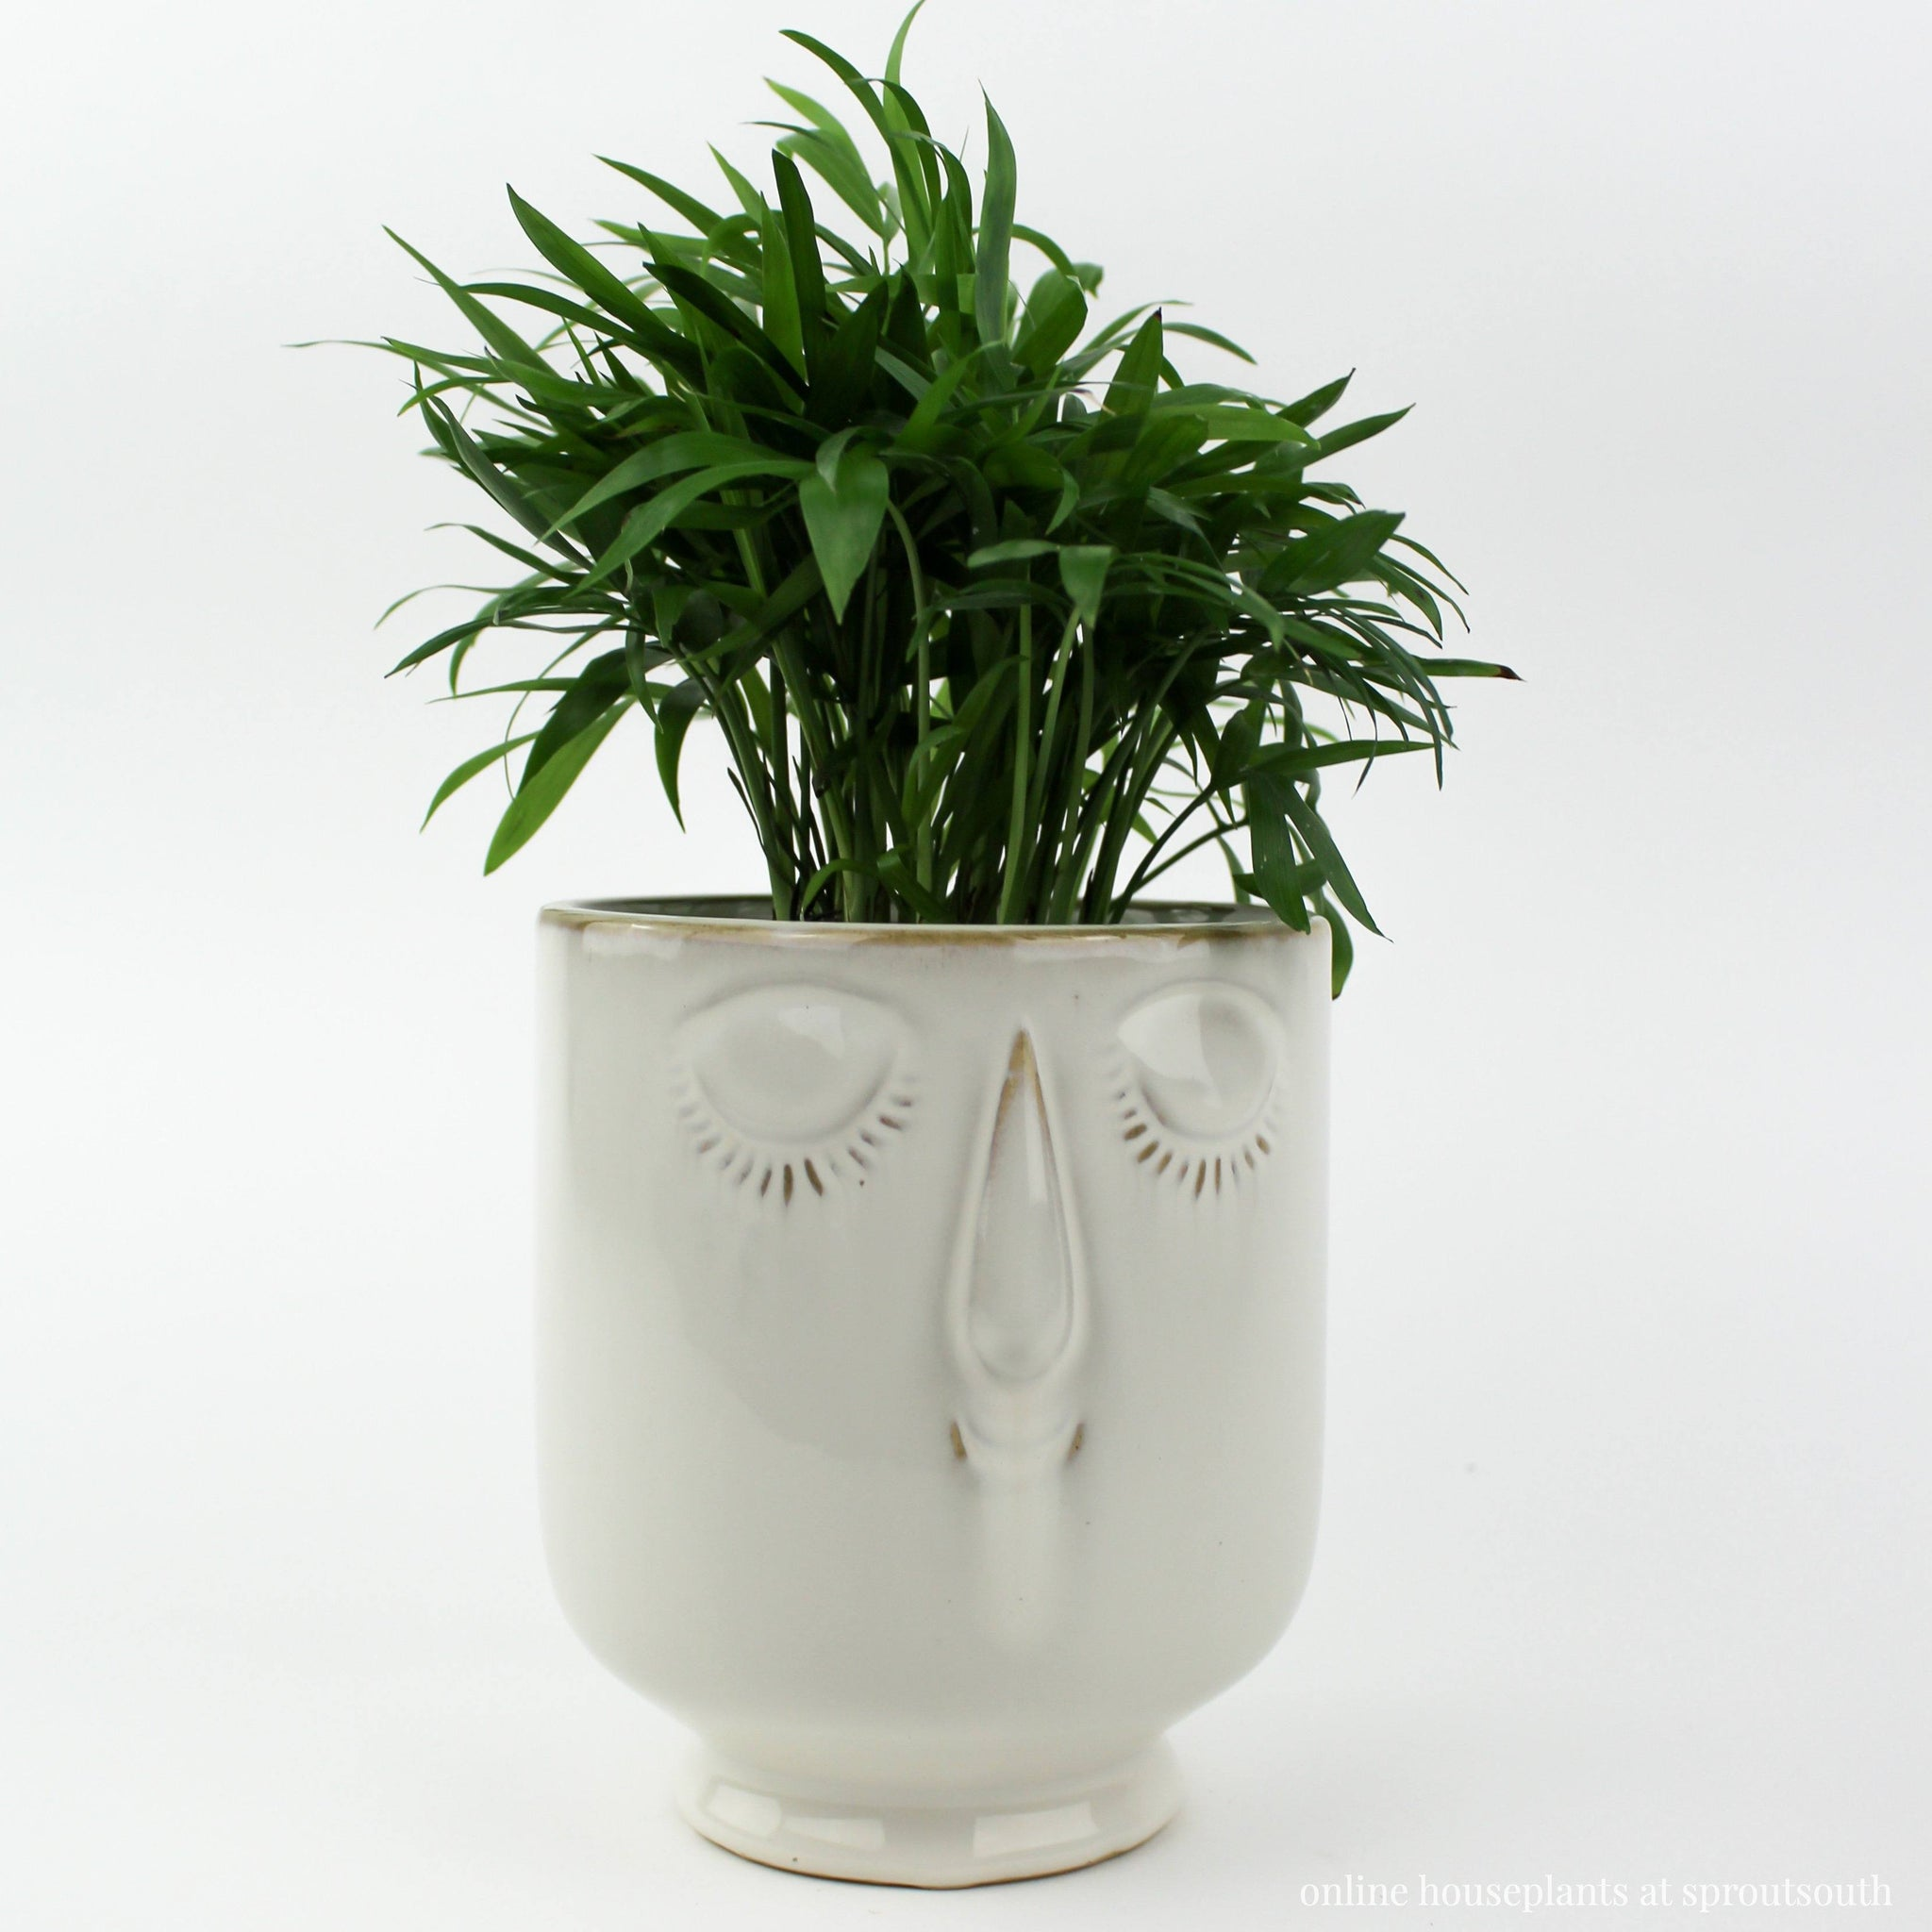 White & Teal Face Planters Planter SproutSouth